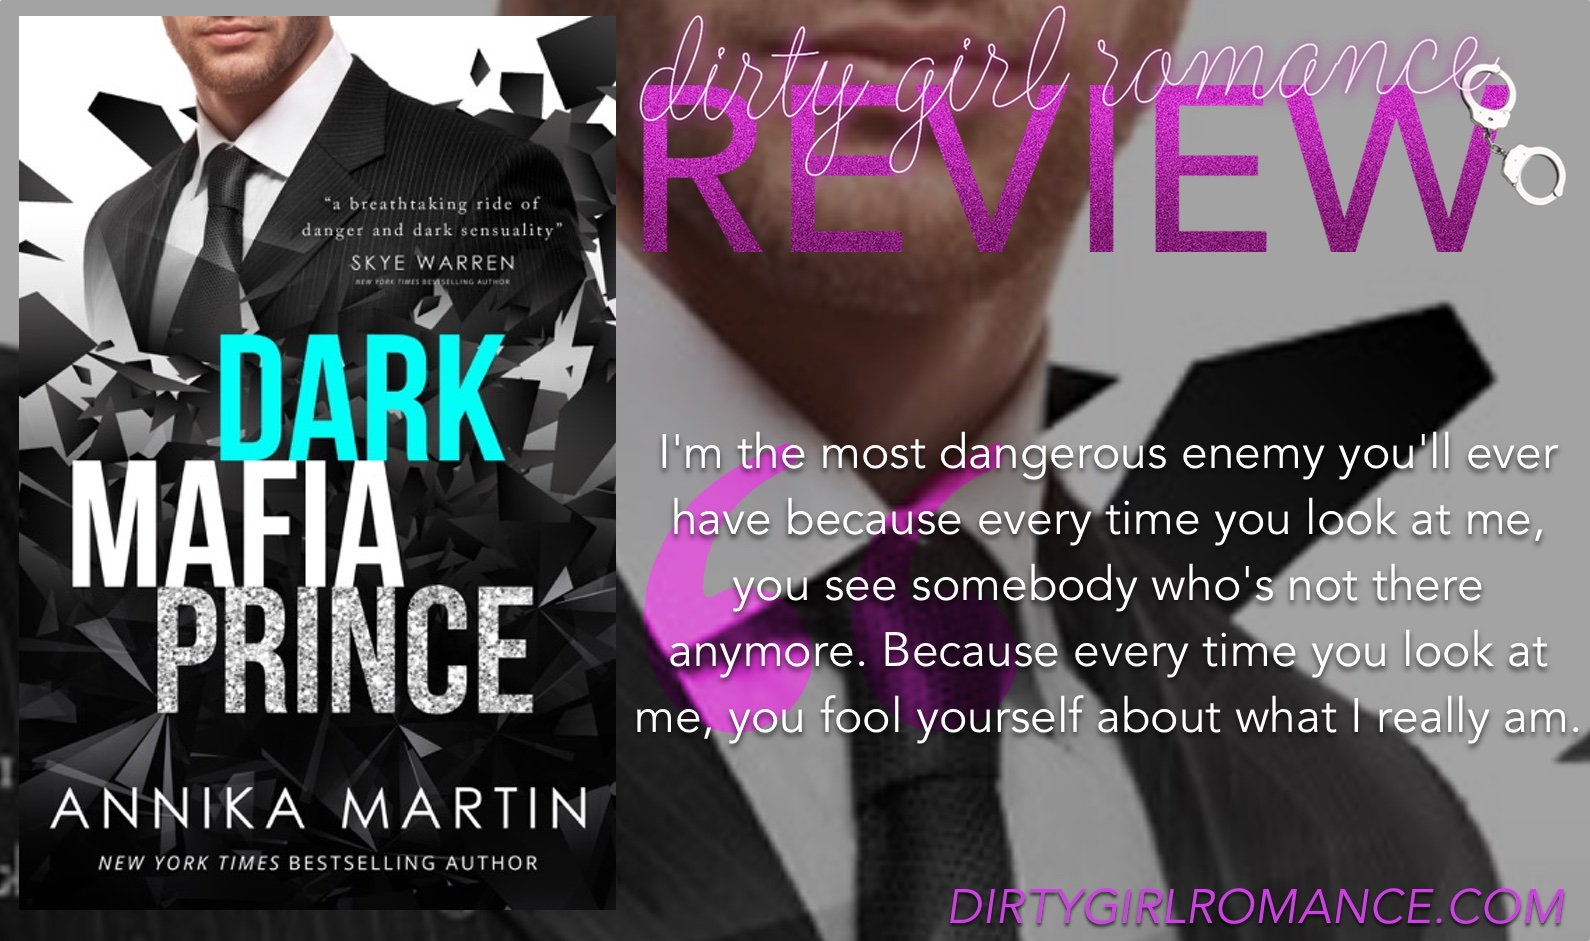 dark mafia prince-DGR review